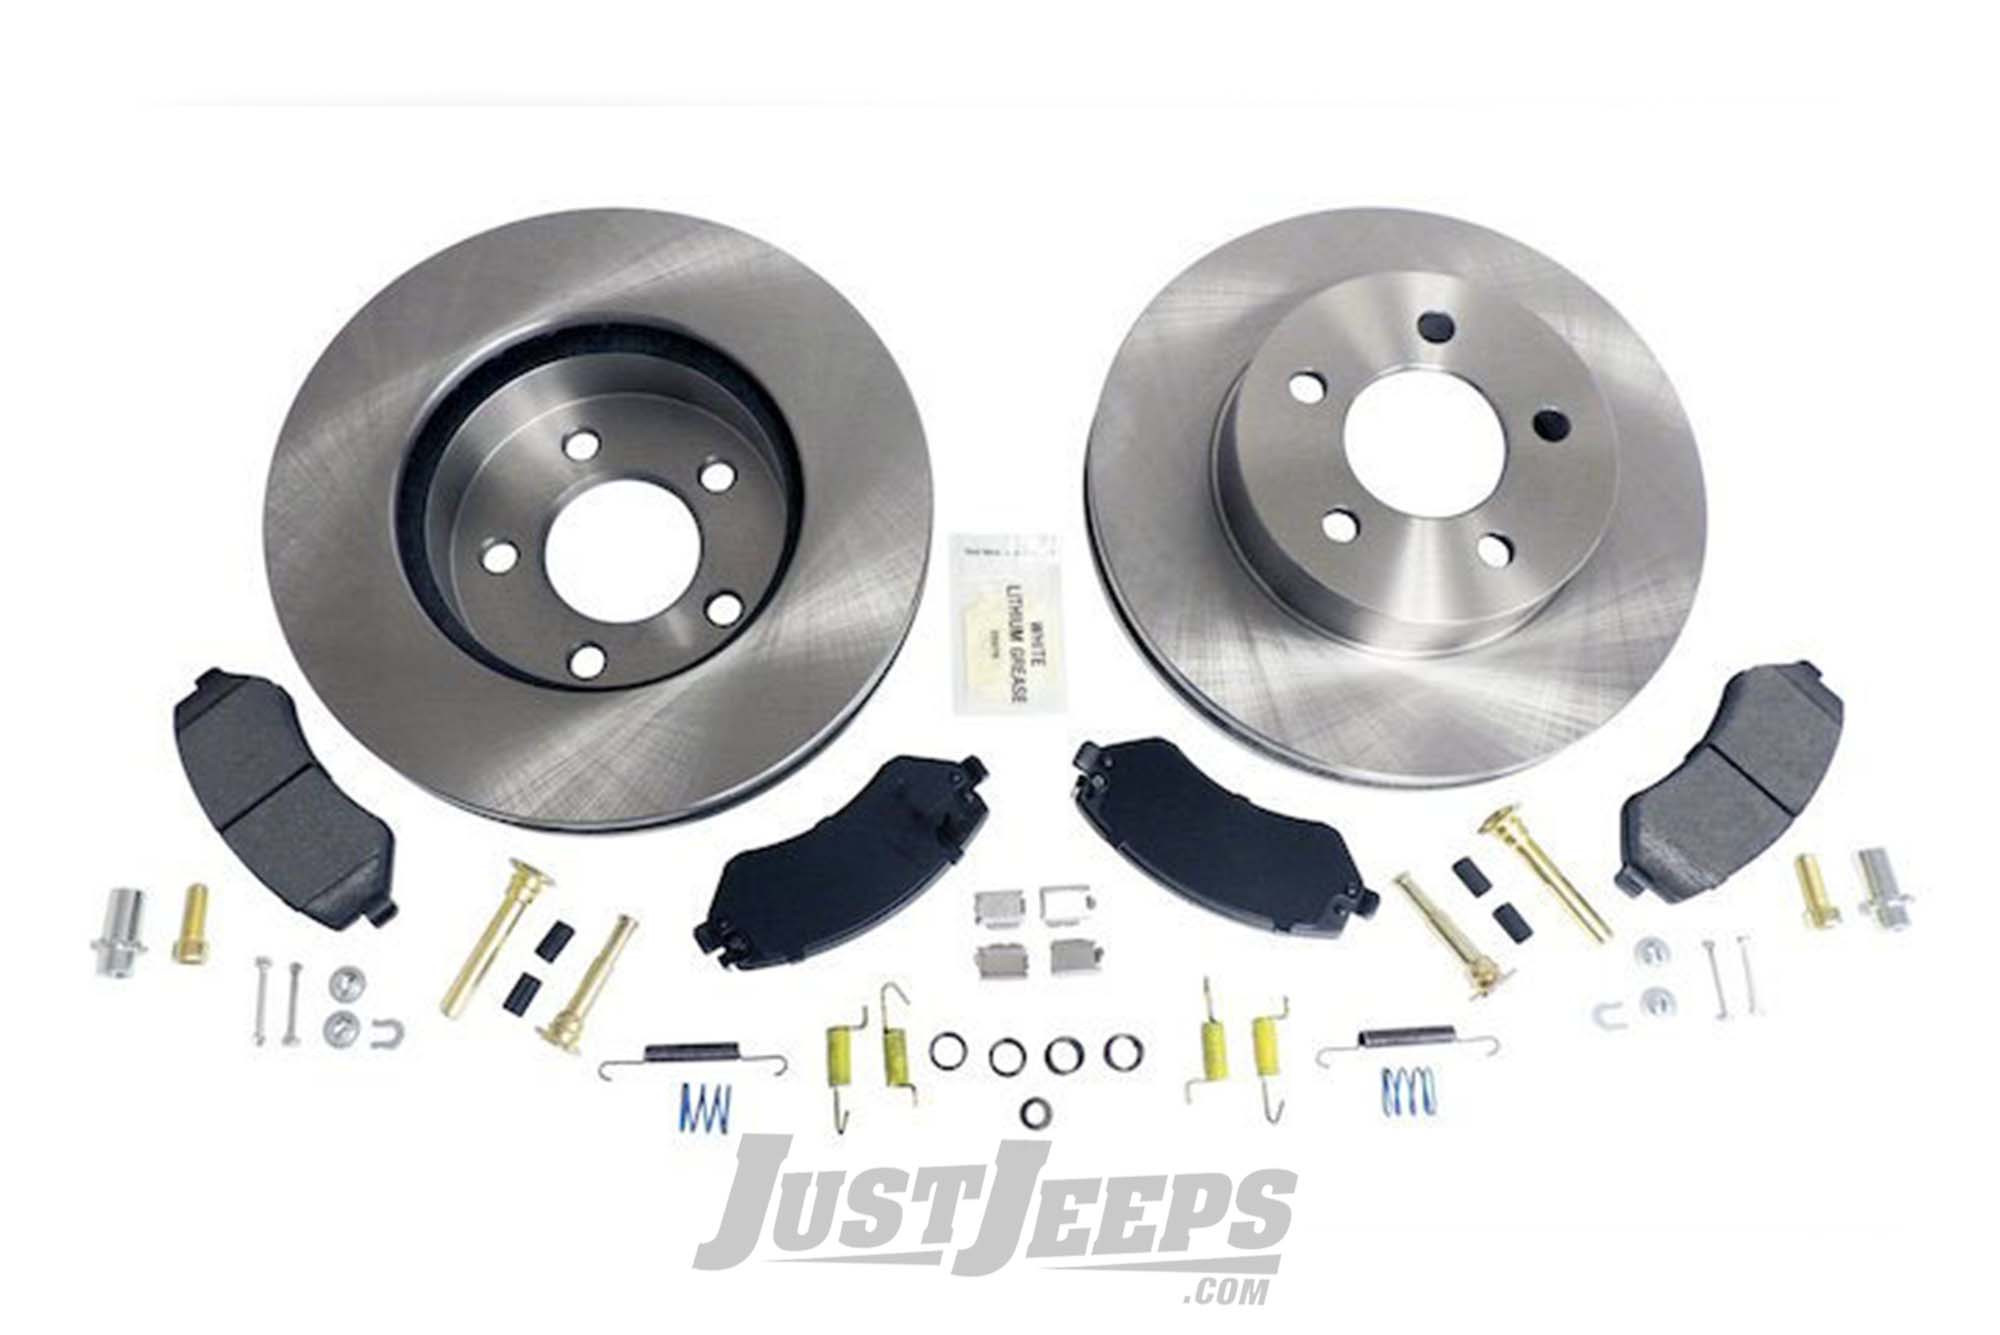 Crown Automotive Front Disc Brake Service Kit For 2002-07 Jeep Liberty KJ Models